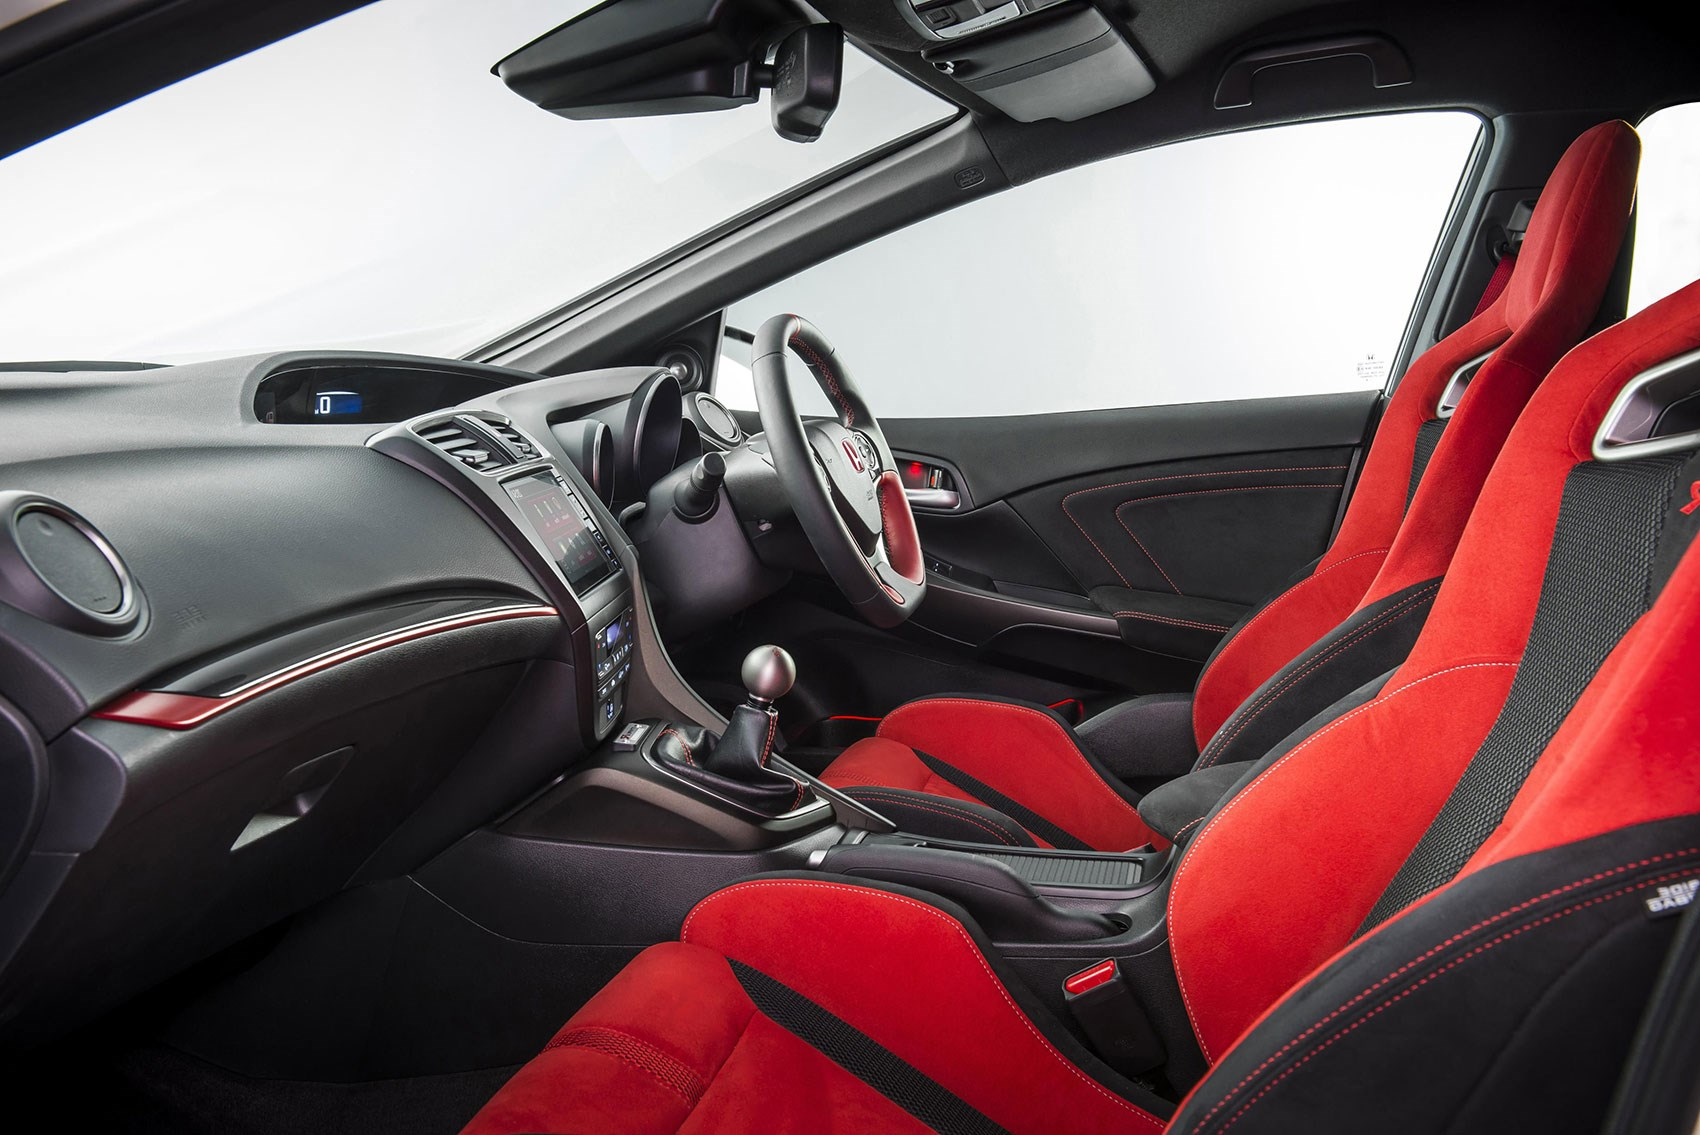 Inside The Honda Civic Type R Cabin